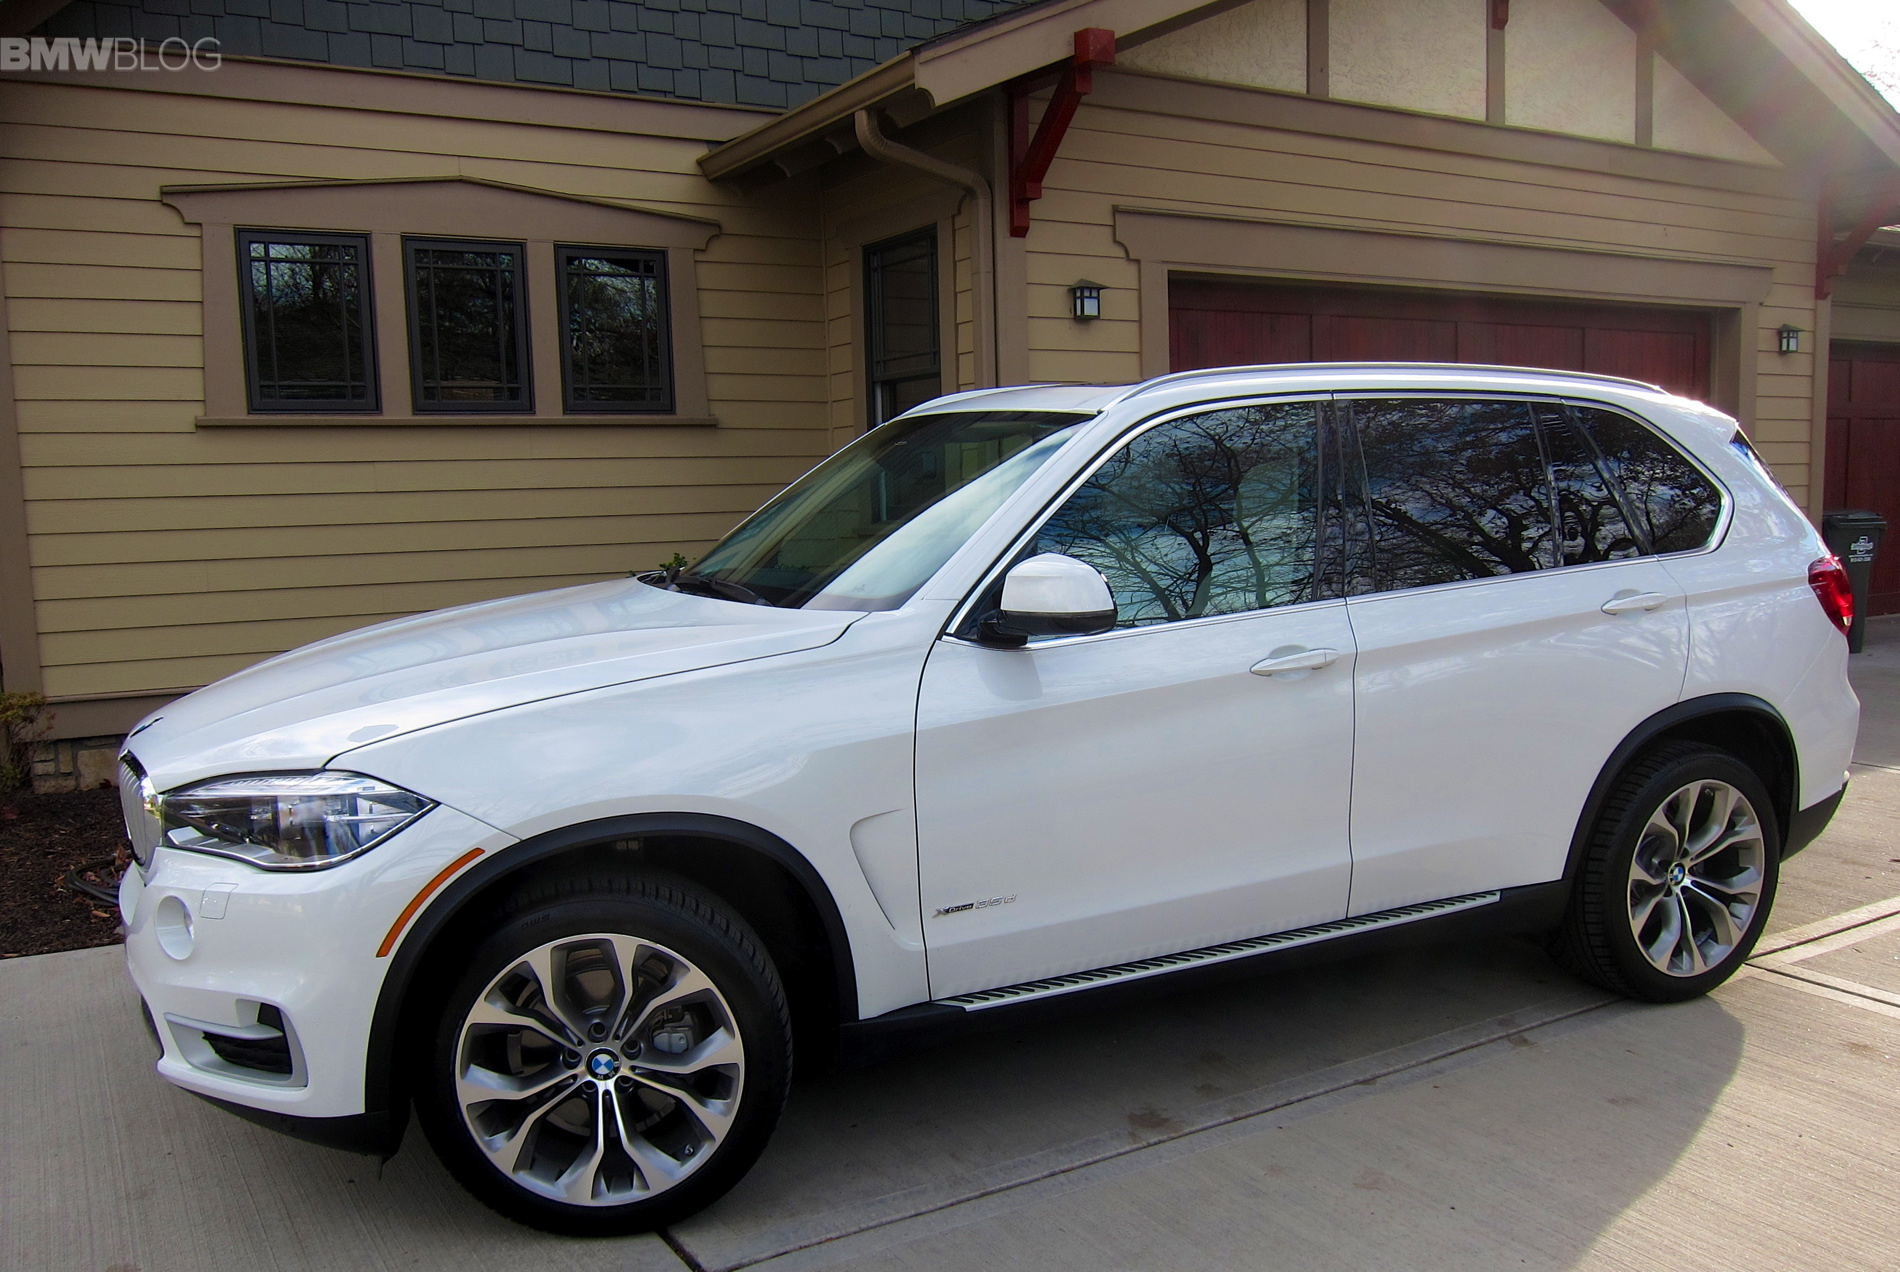 2015 bmw x5 xdrive35d images 1900x1200 07